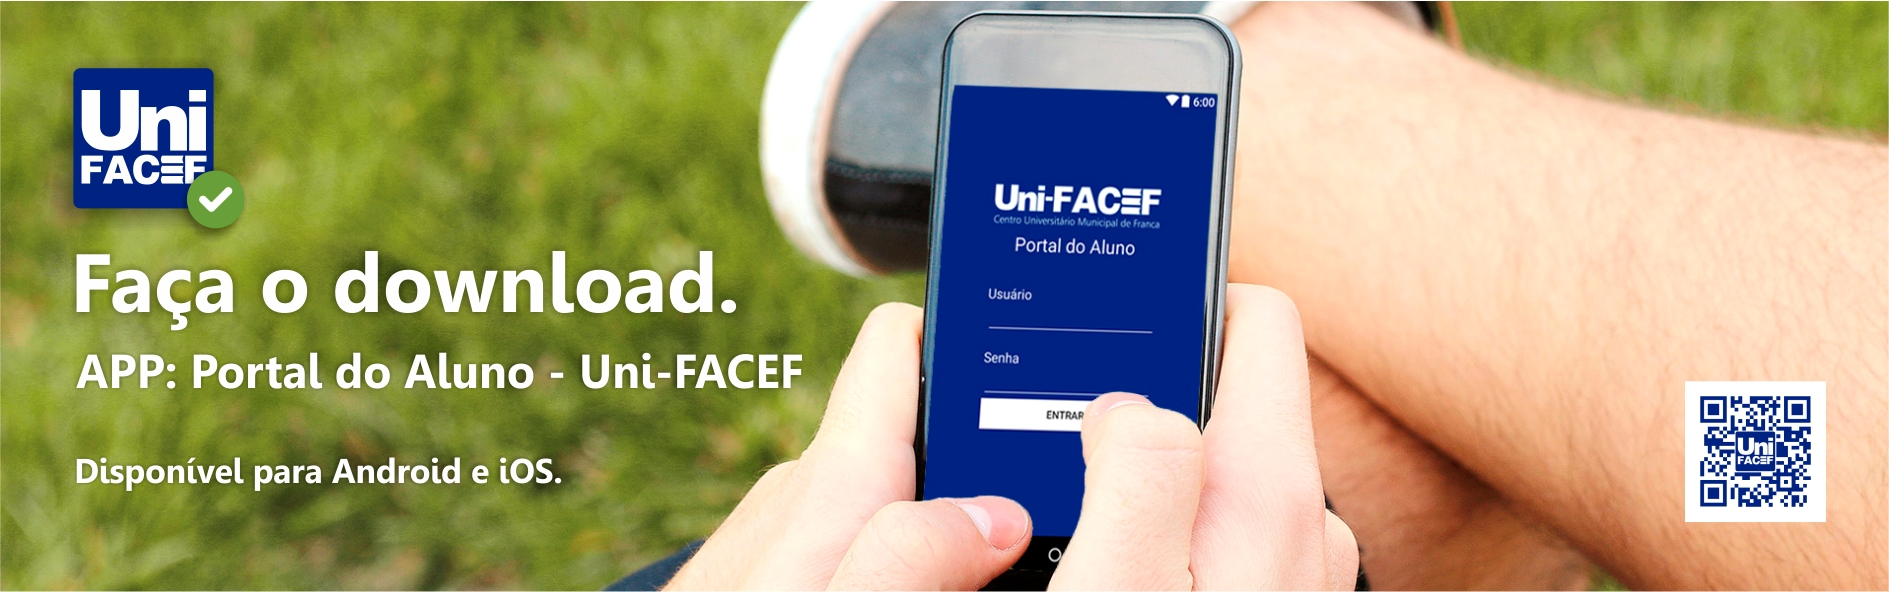 Aplicativo Uni-FACEF para Android e iOS